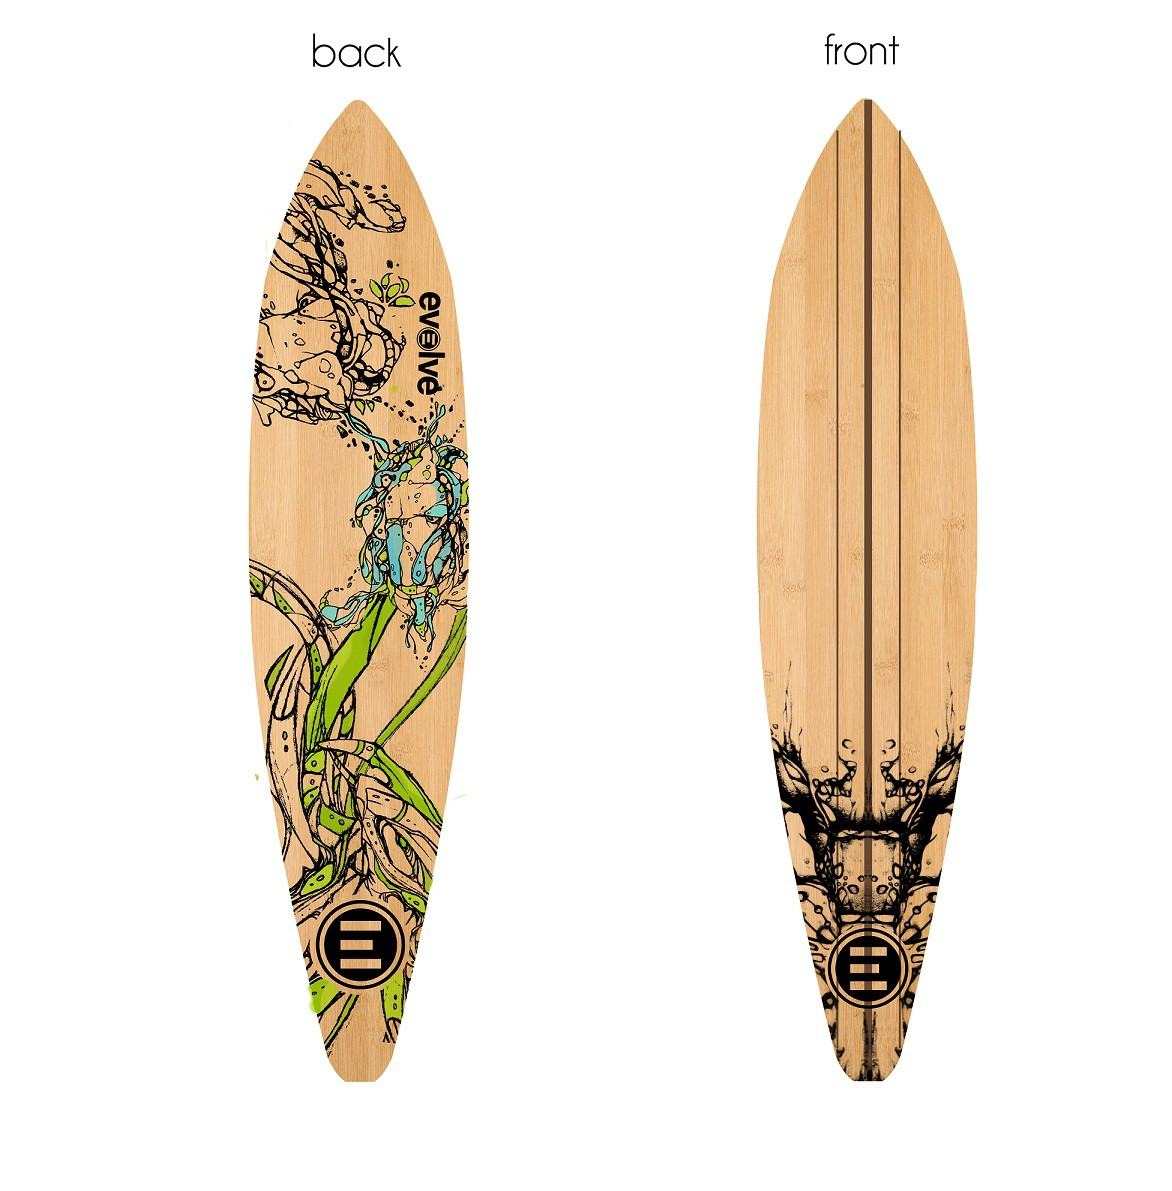 Awesome skateboard deck design needed!